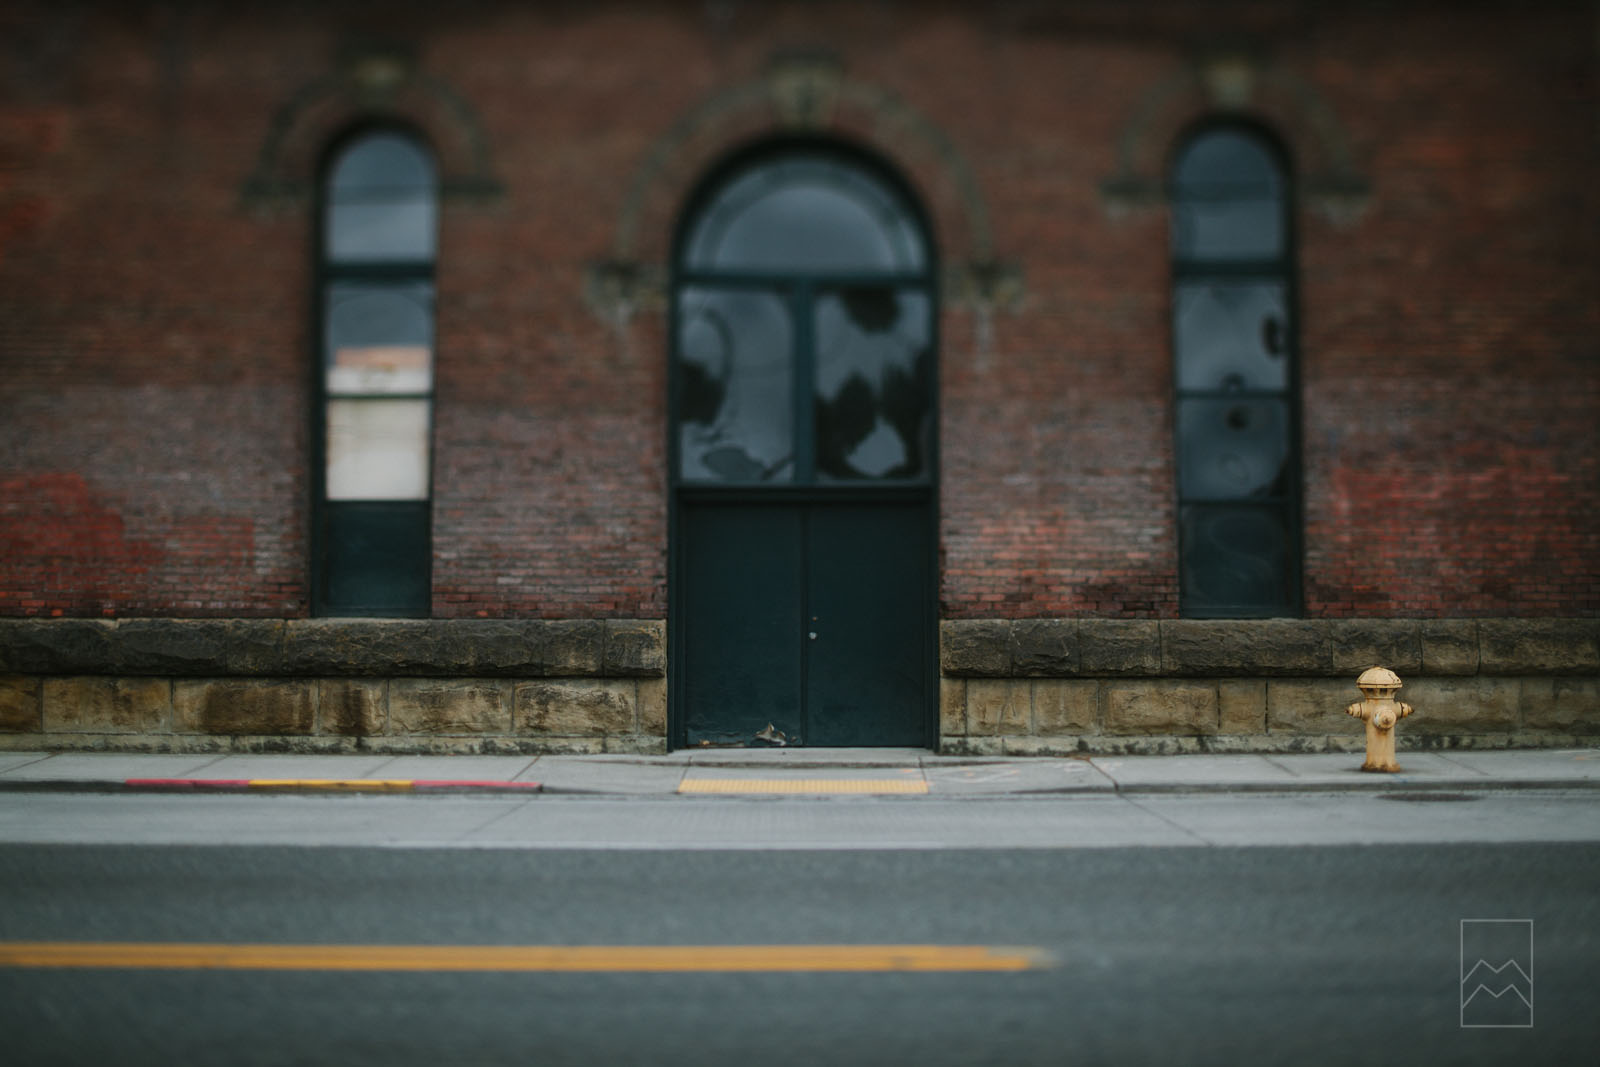 street-photography-with-a-tilt-shift-lens-by-meghan-mcmackin